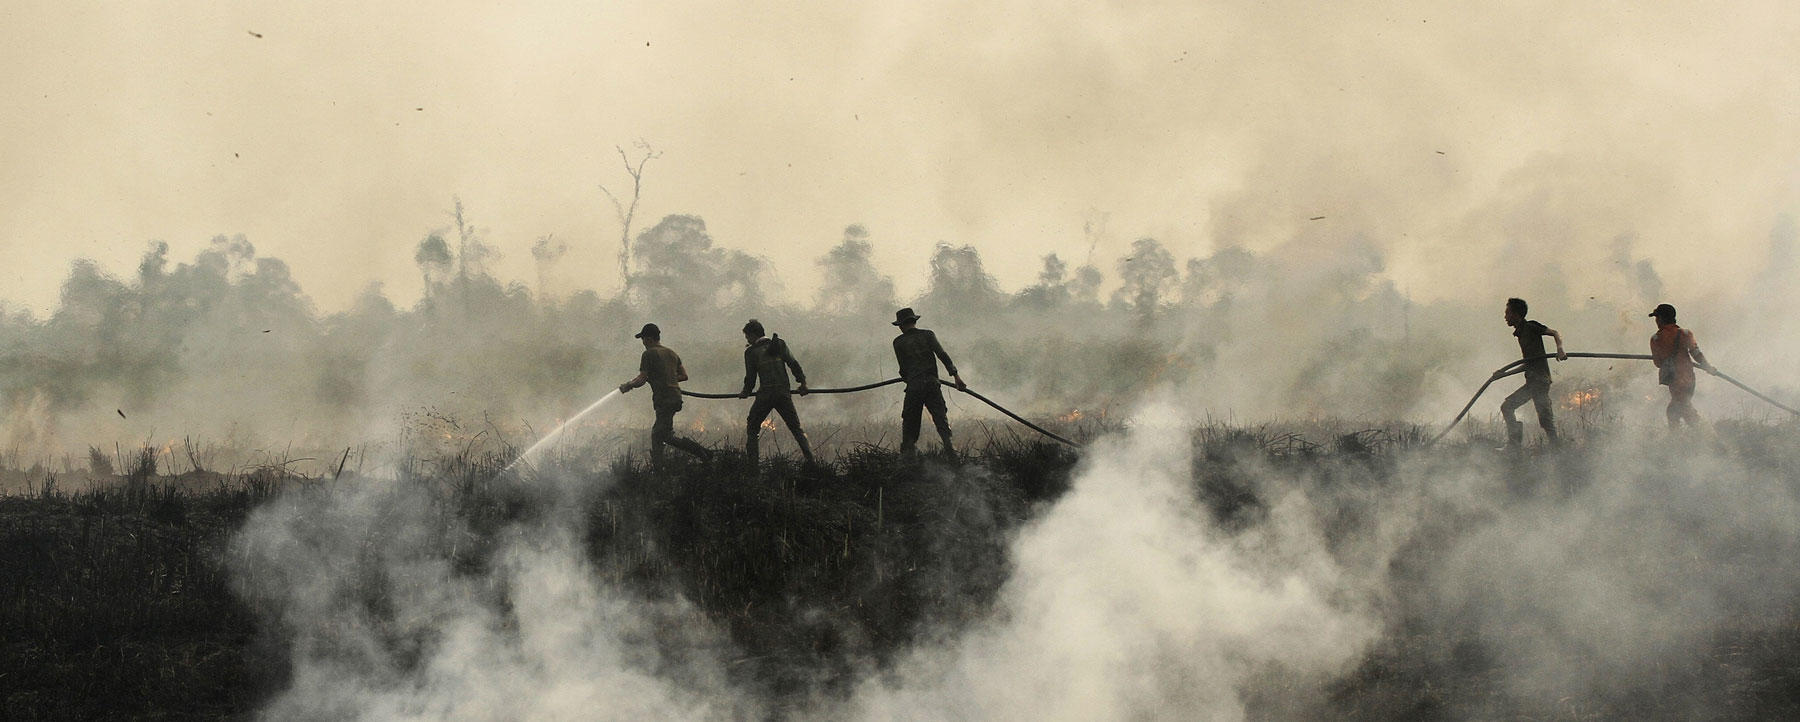 Indonesian fire fighters put out a fire in Ogan Ilir, South Sumatra.